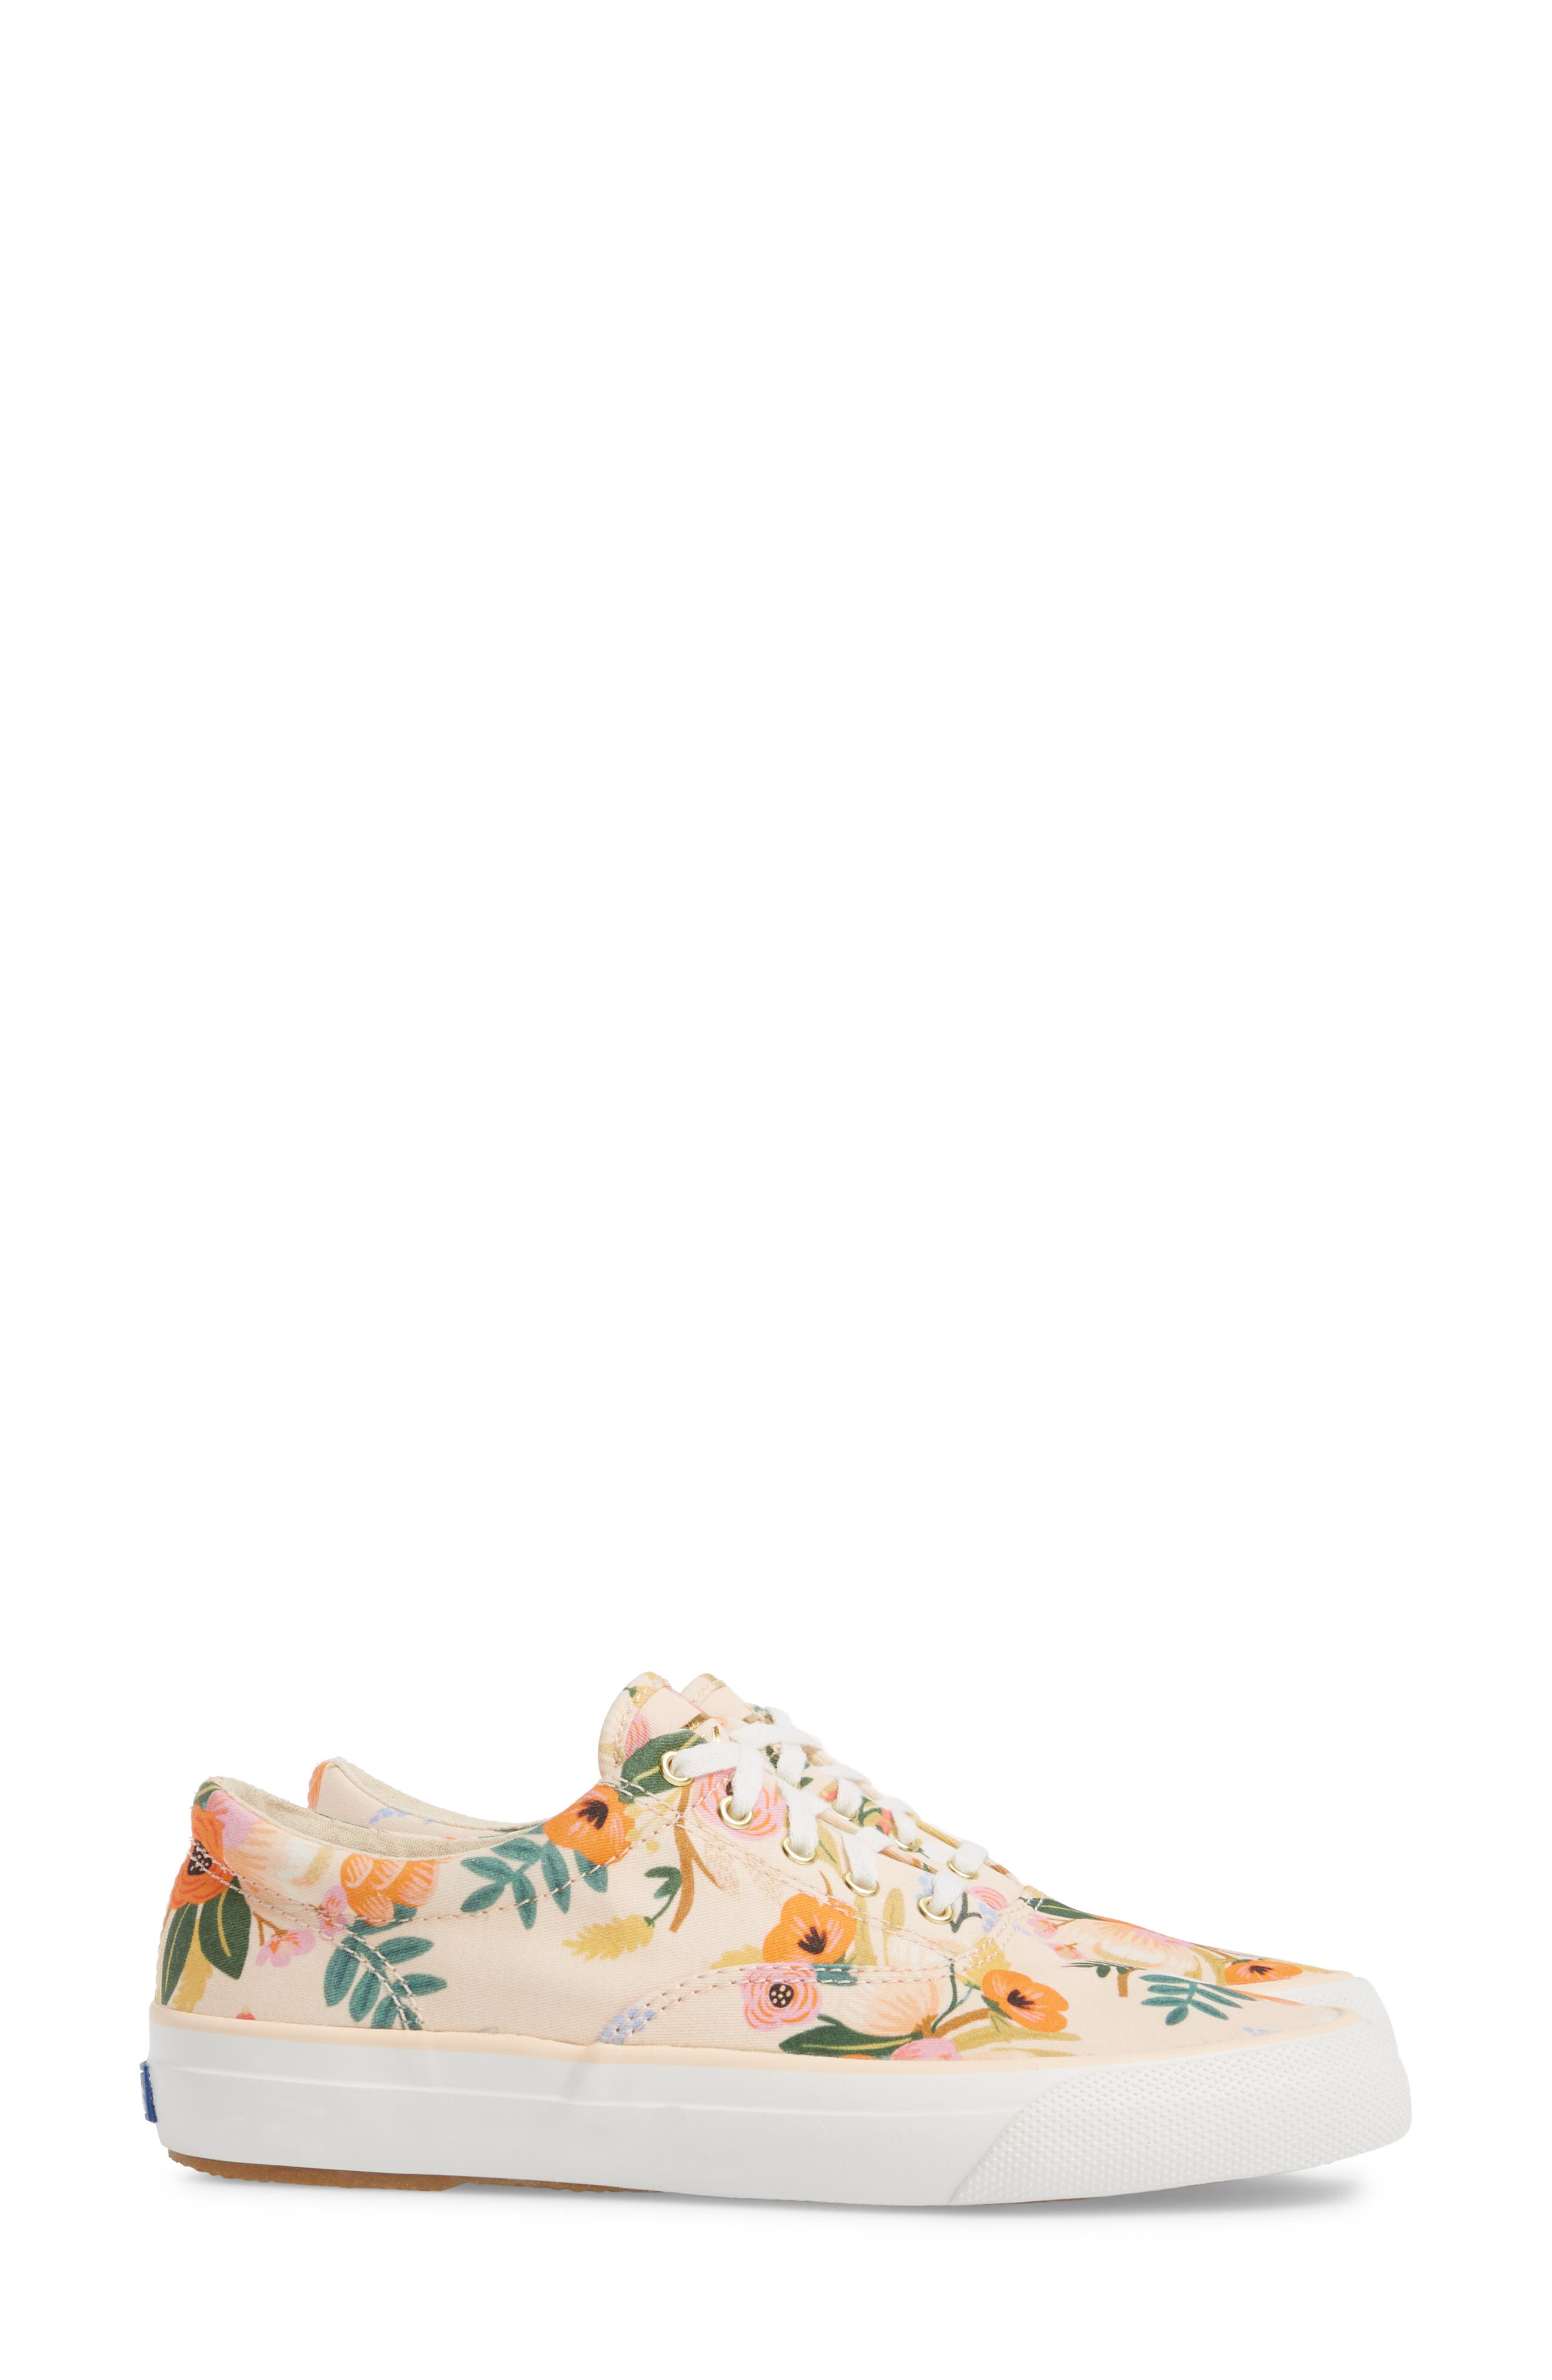 x Rifle Paper Co. Anchor Lively Floral Slip-On Sneaker,                             Alternate thumbnail 4, color,                             Pink